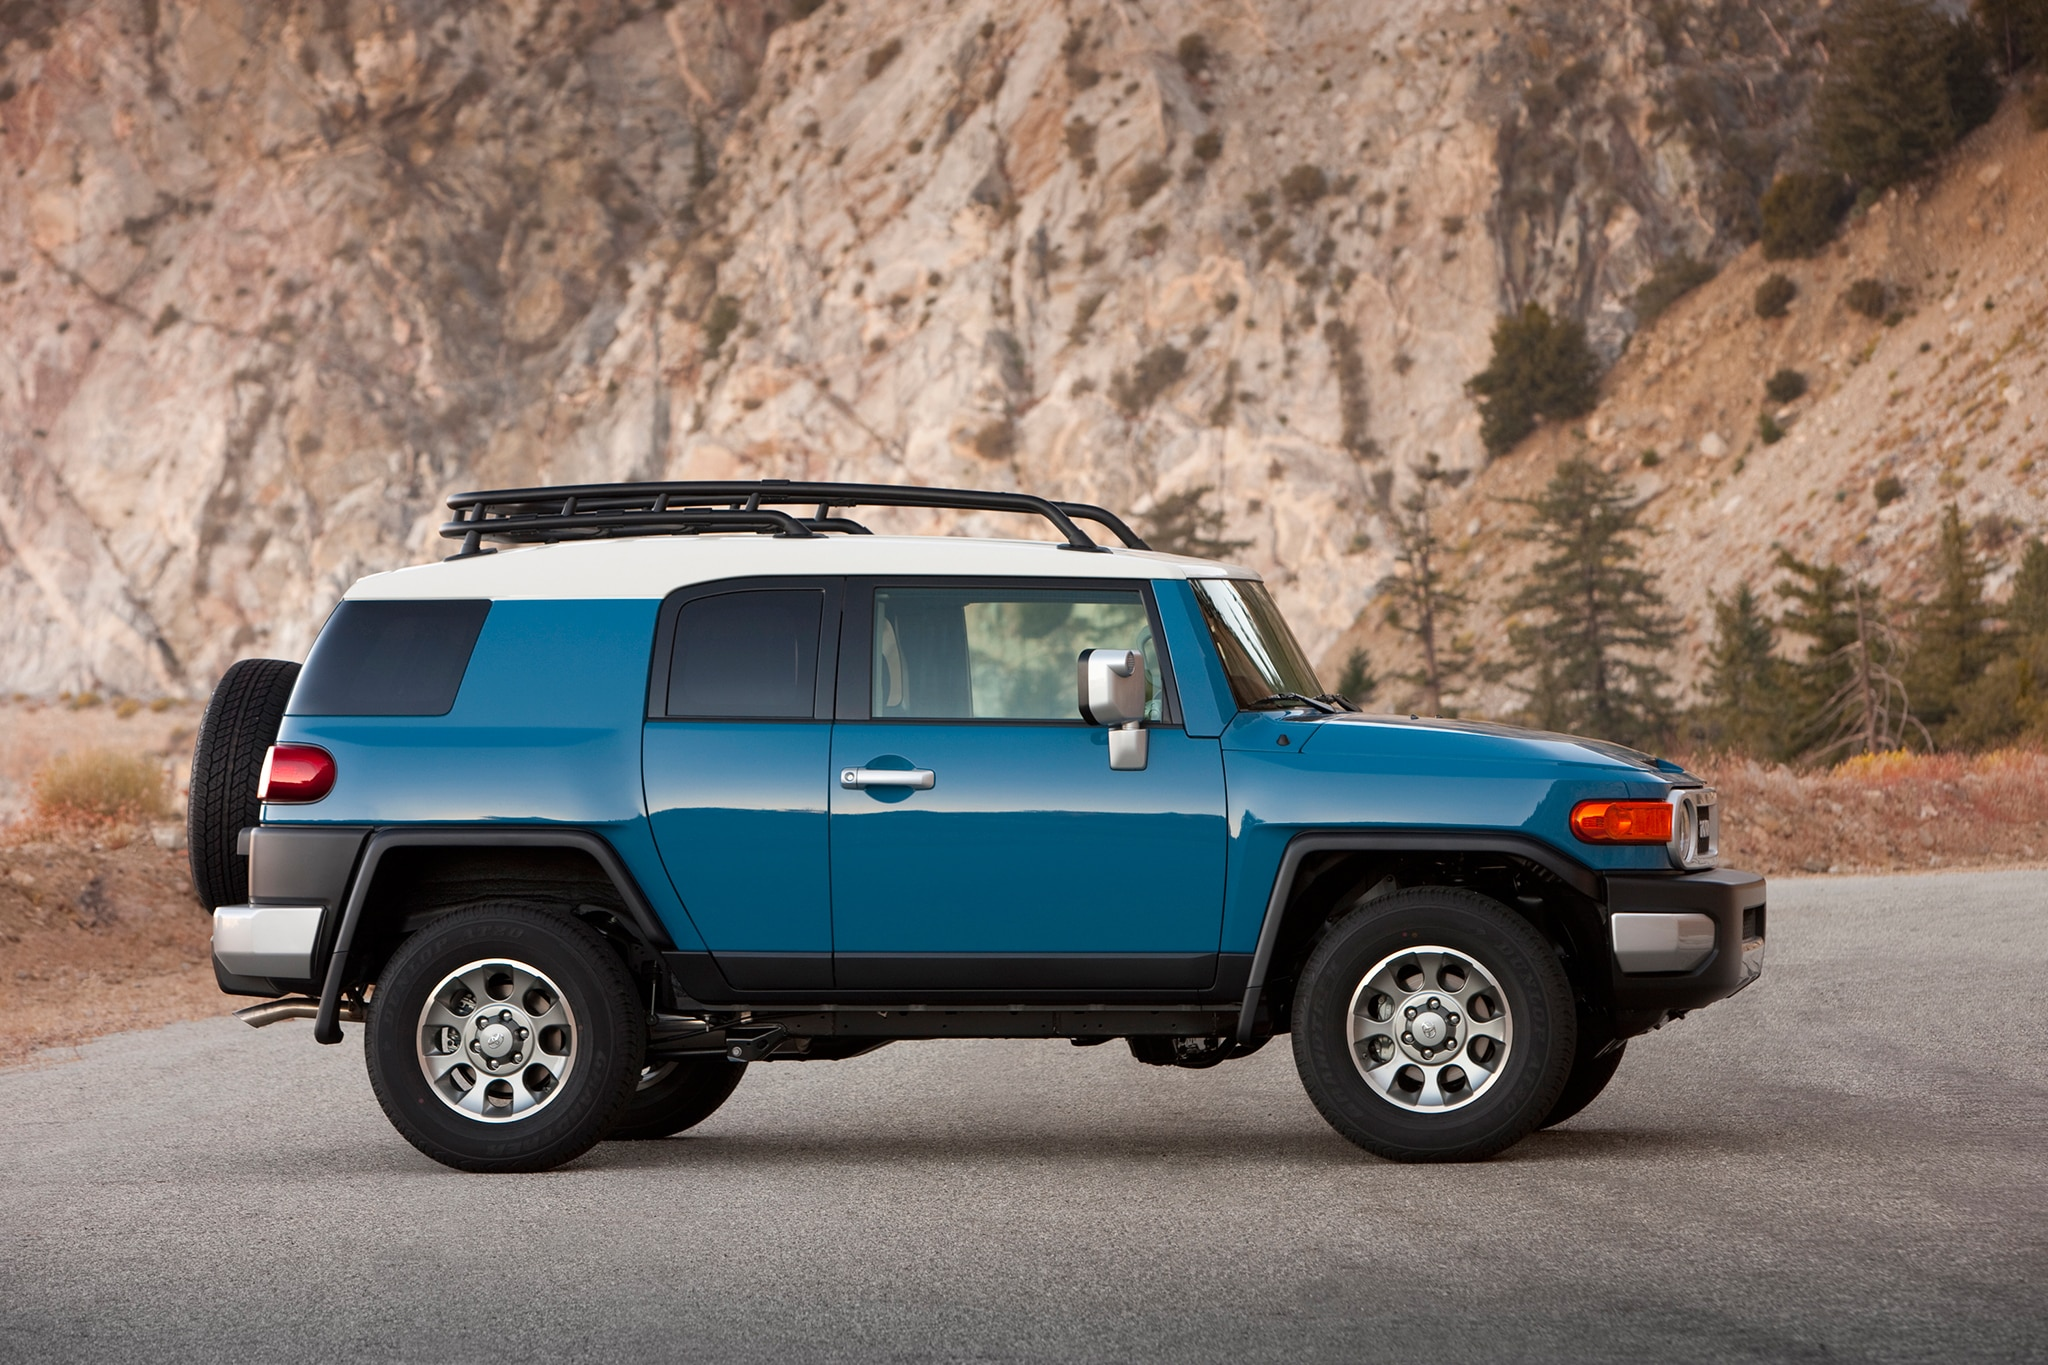 The Fj Company Sport Offers Classic Toyota Land Cruisers For 1973 Cruiser Original 2013 37 250